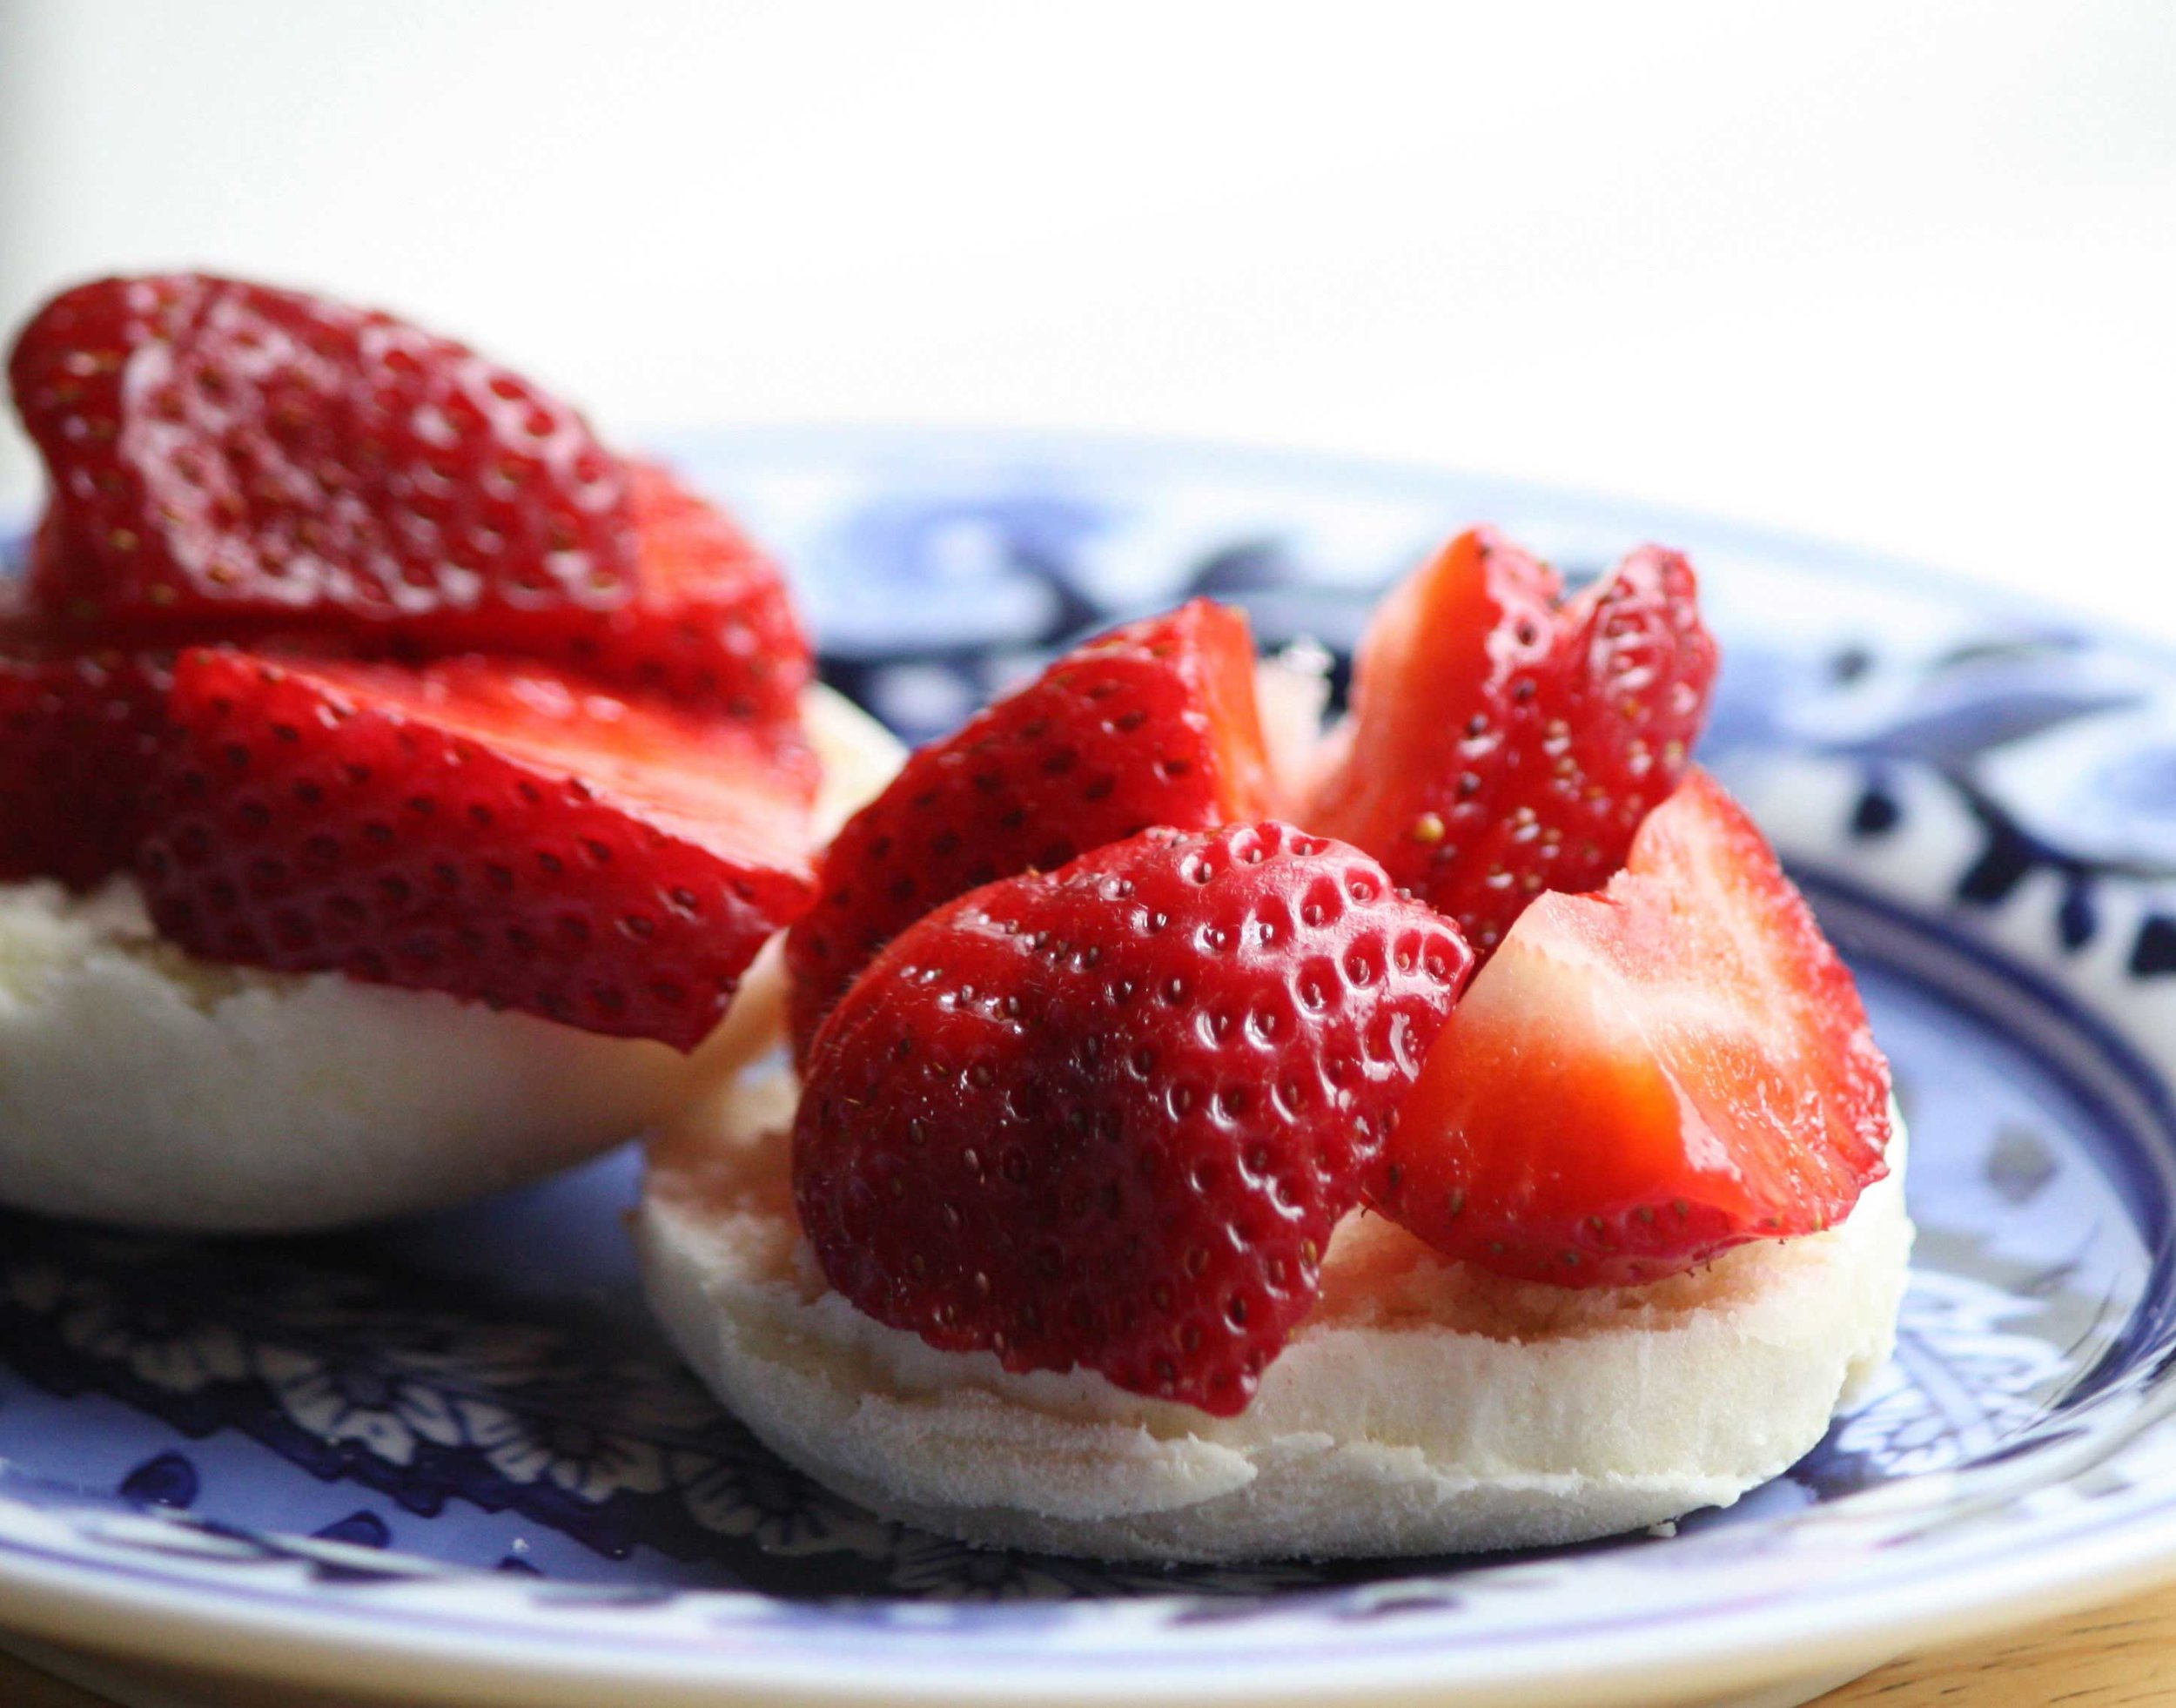 90_Red-Strawberry-Shortcake_rgb_crop_opt_web.jpg